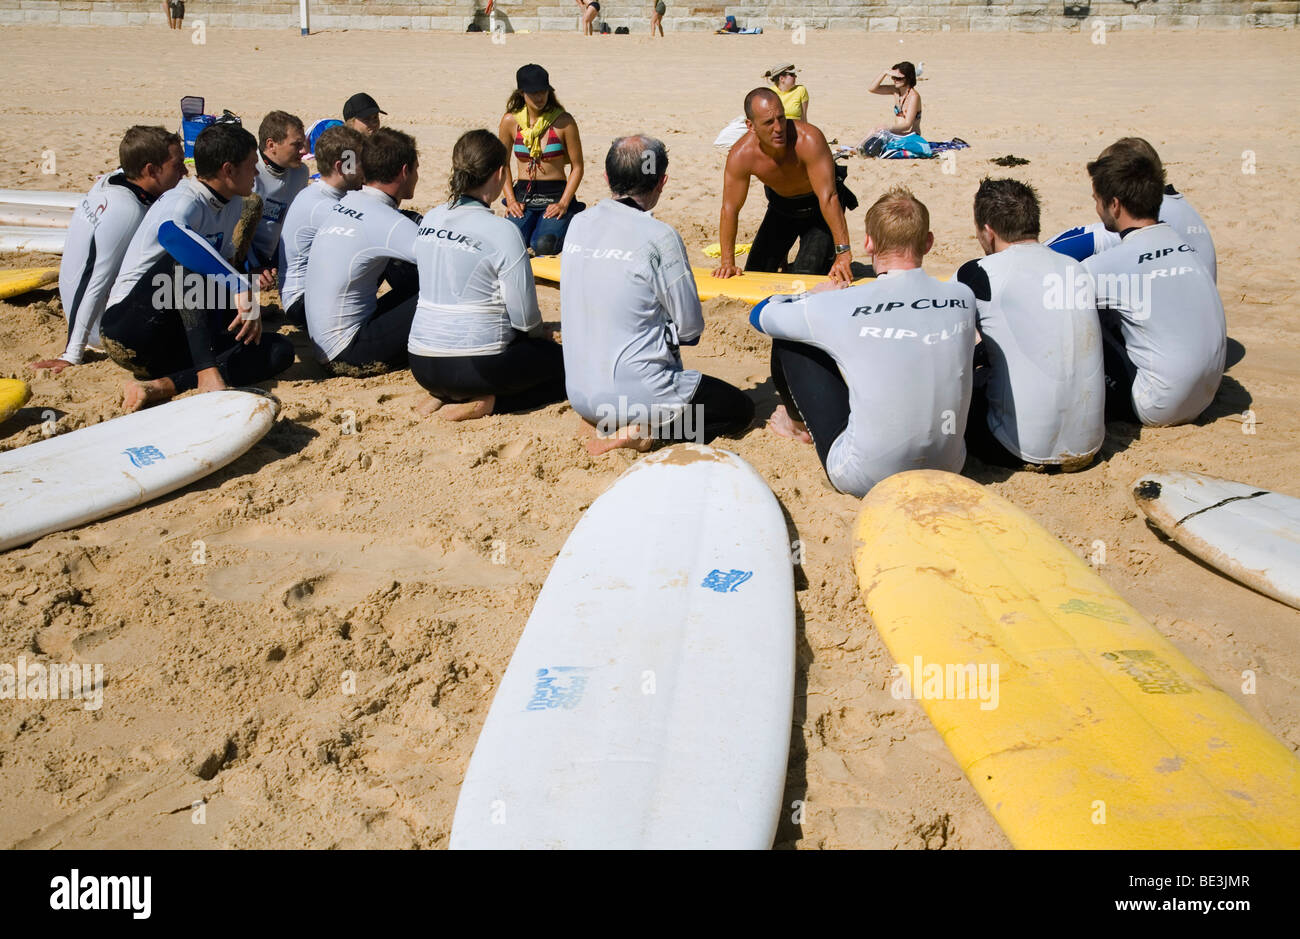 Surf school on the sands of Manly Beach. Sydney, New South Wales, AUSTRALIA - Stock Image